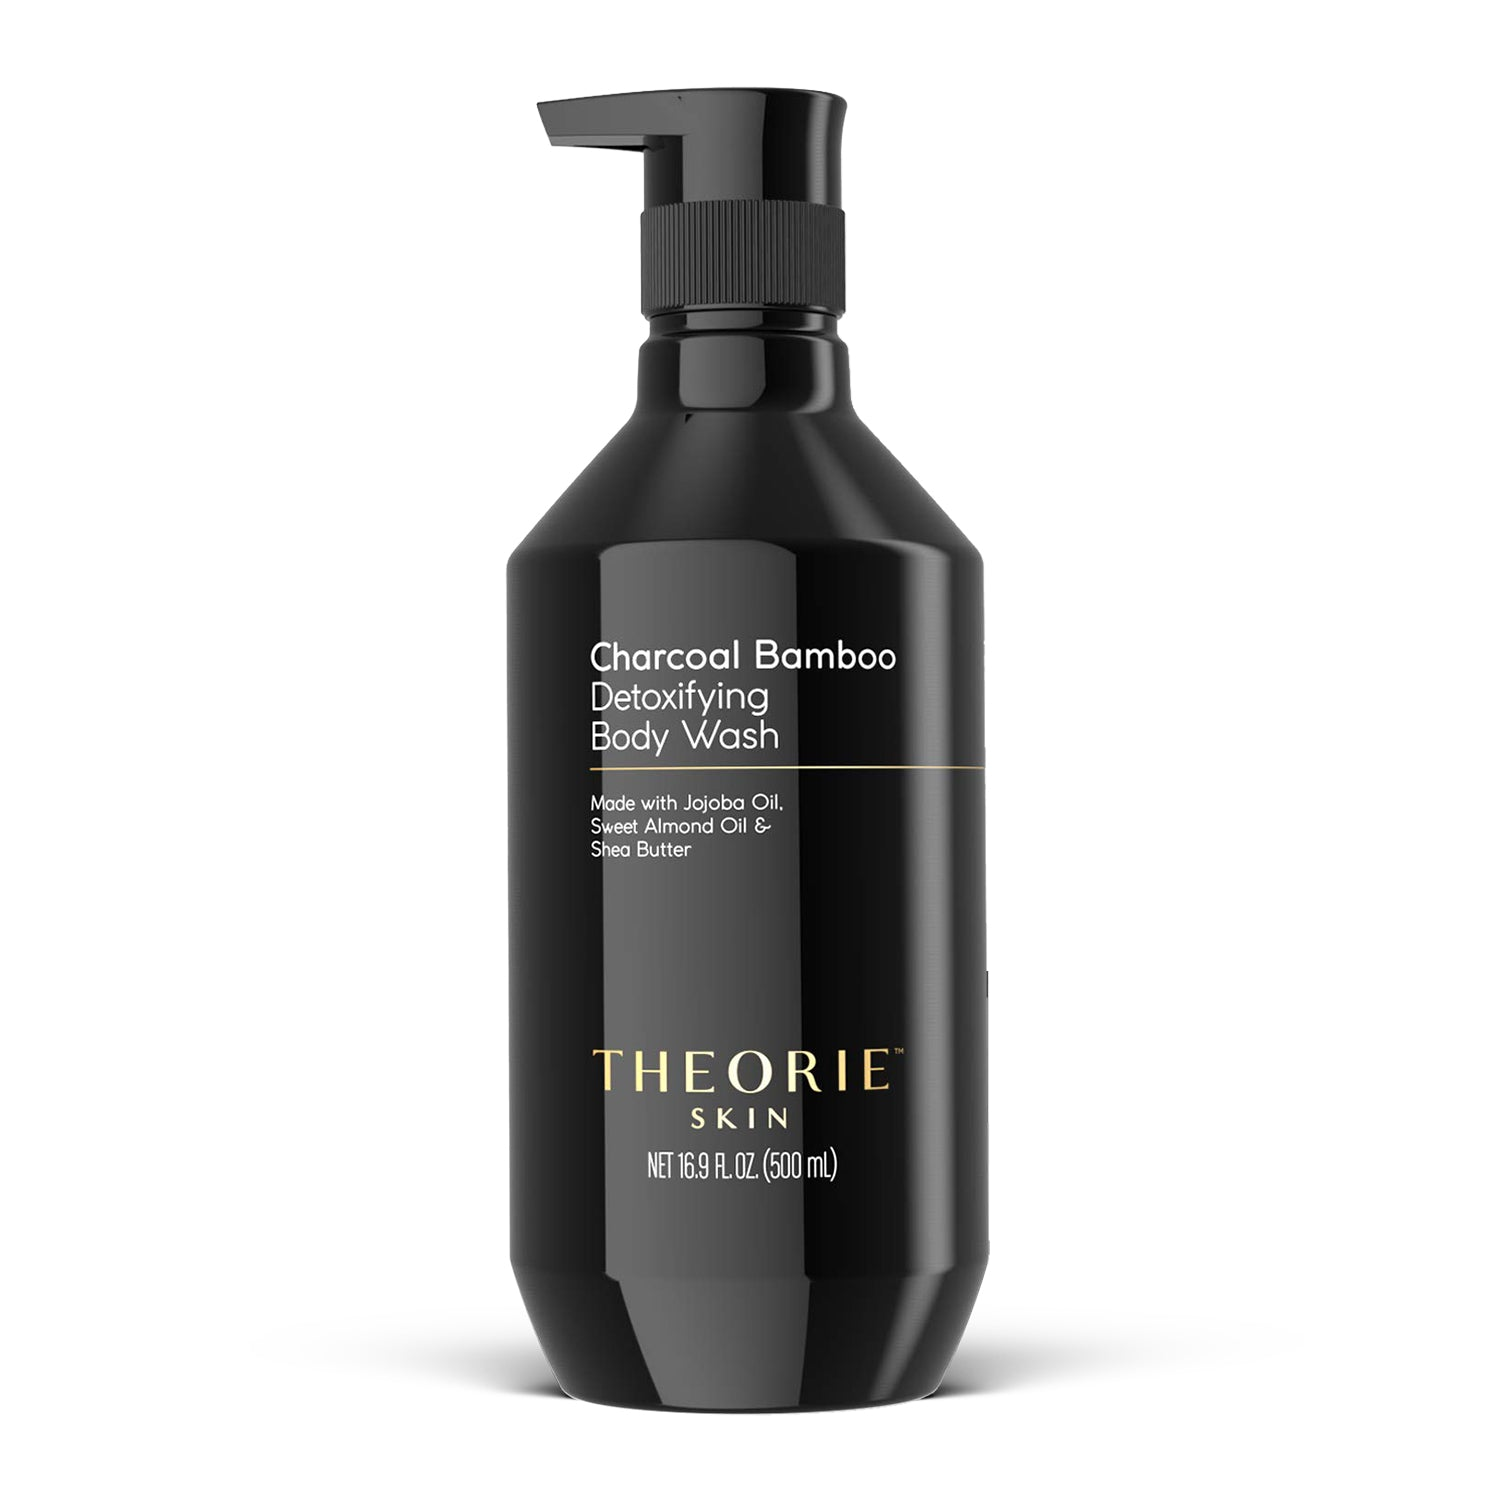 Theorie: Sage - Charcoal Bamboo Detoxifying Body Wash